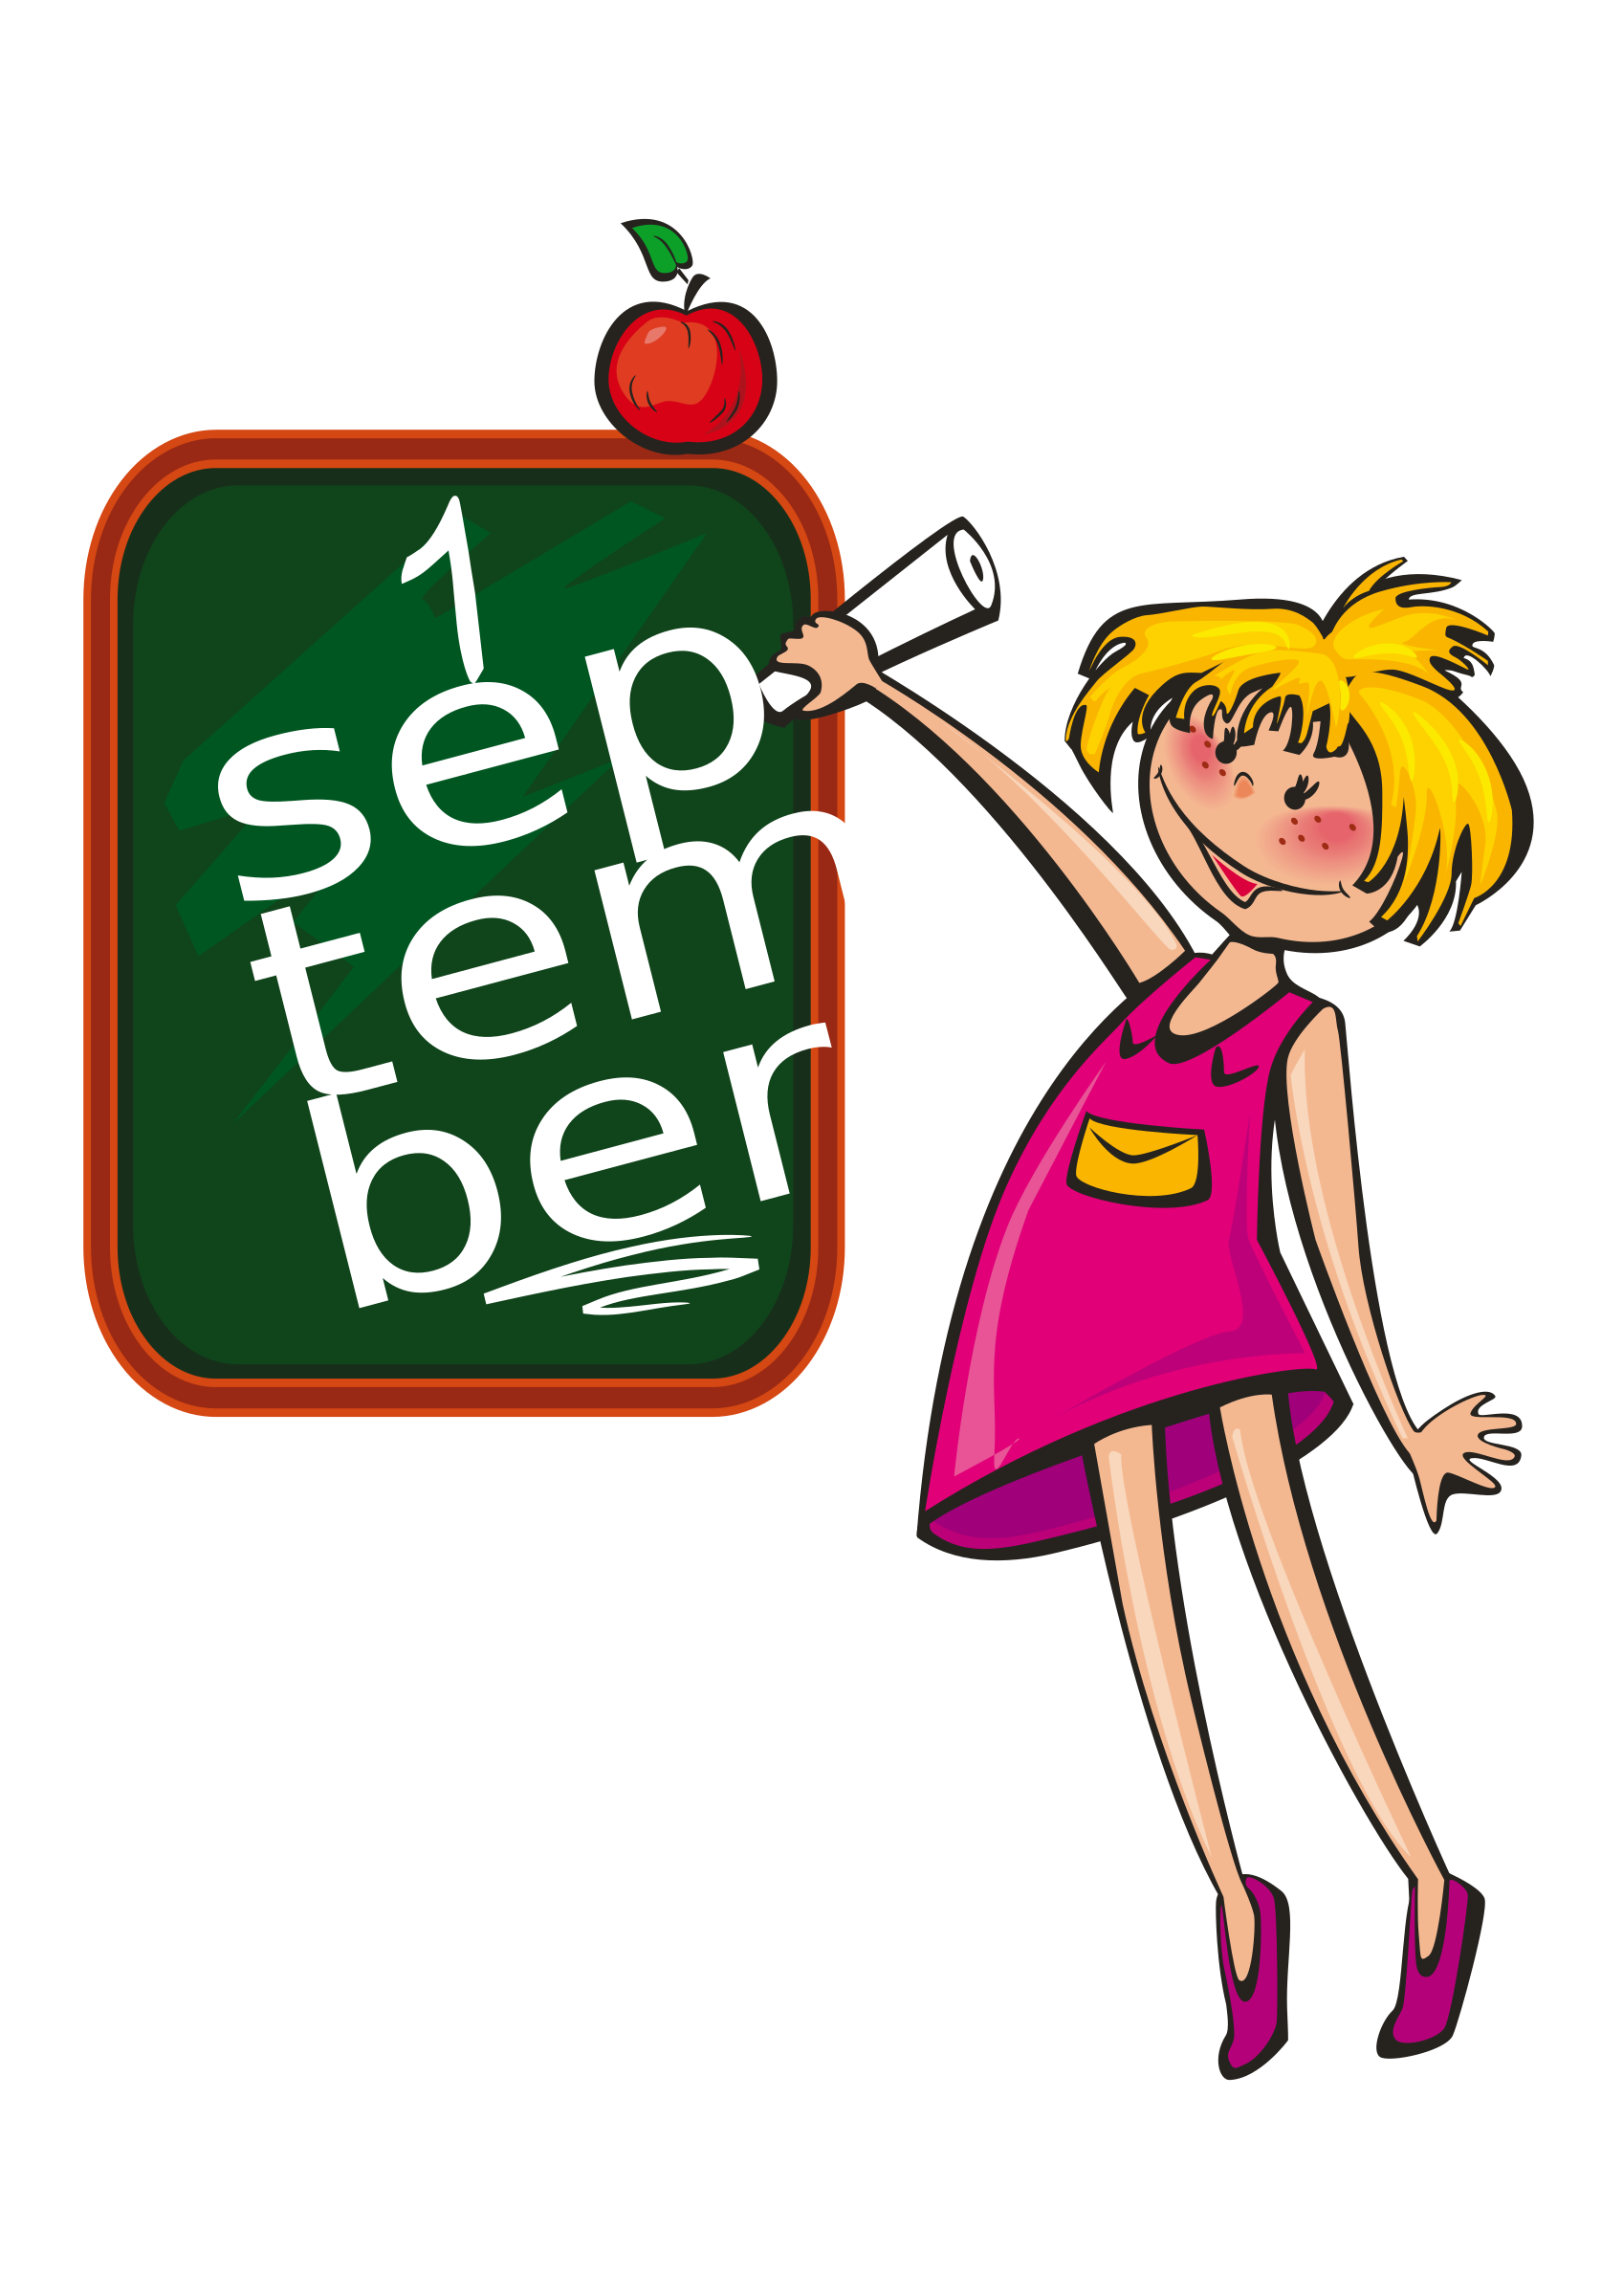 Back to school on 1 september by Iyo